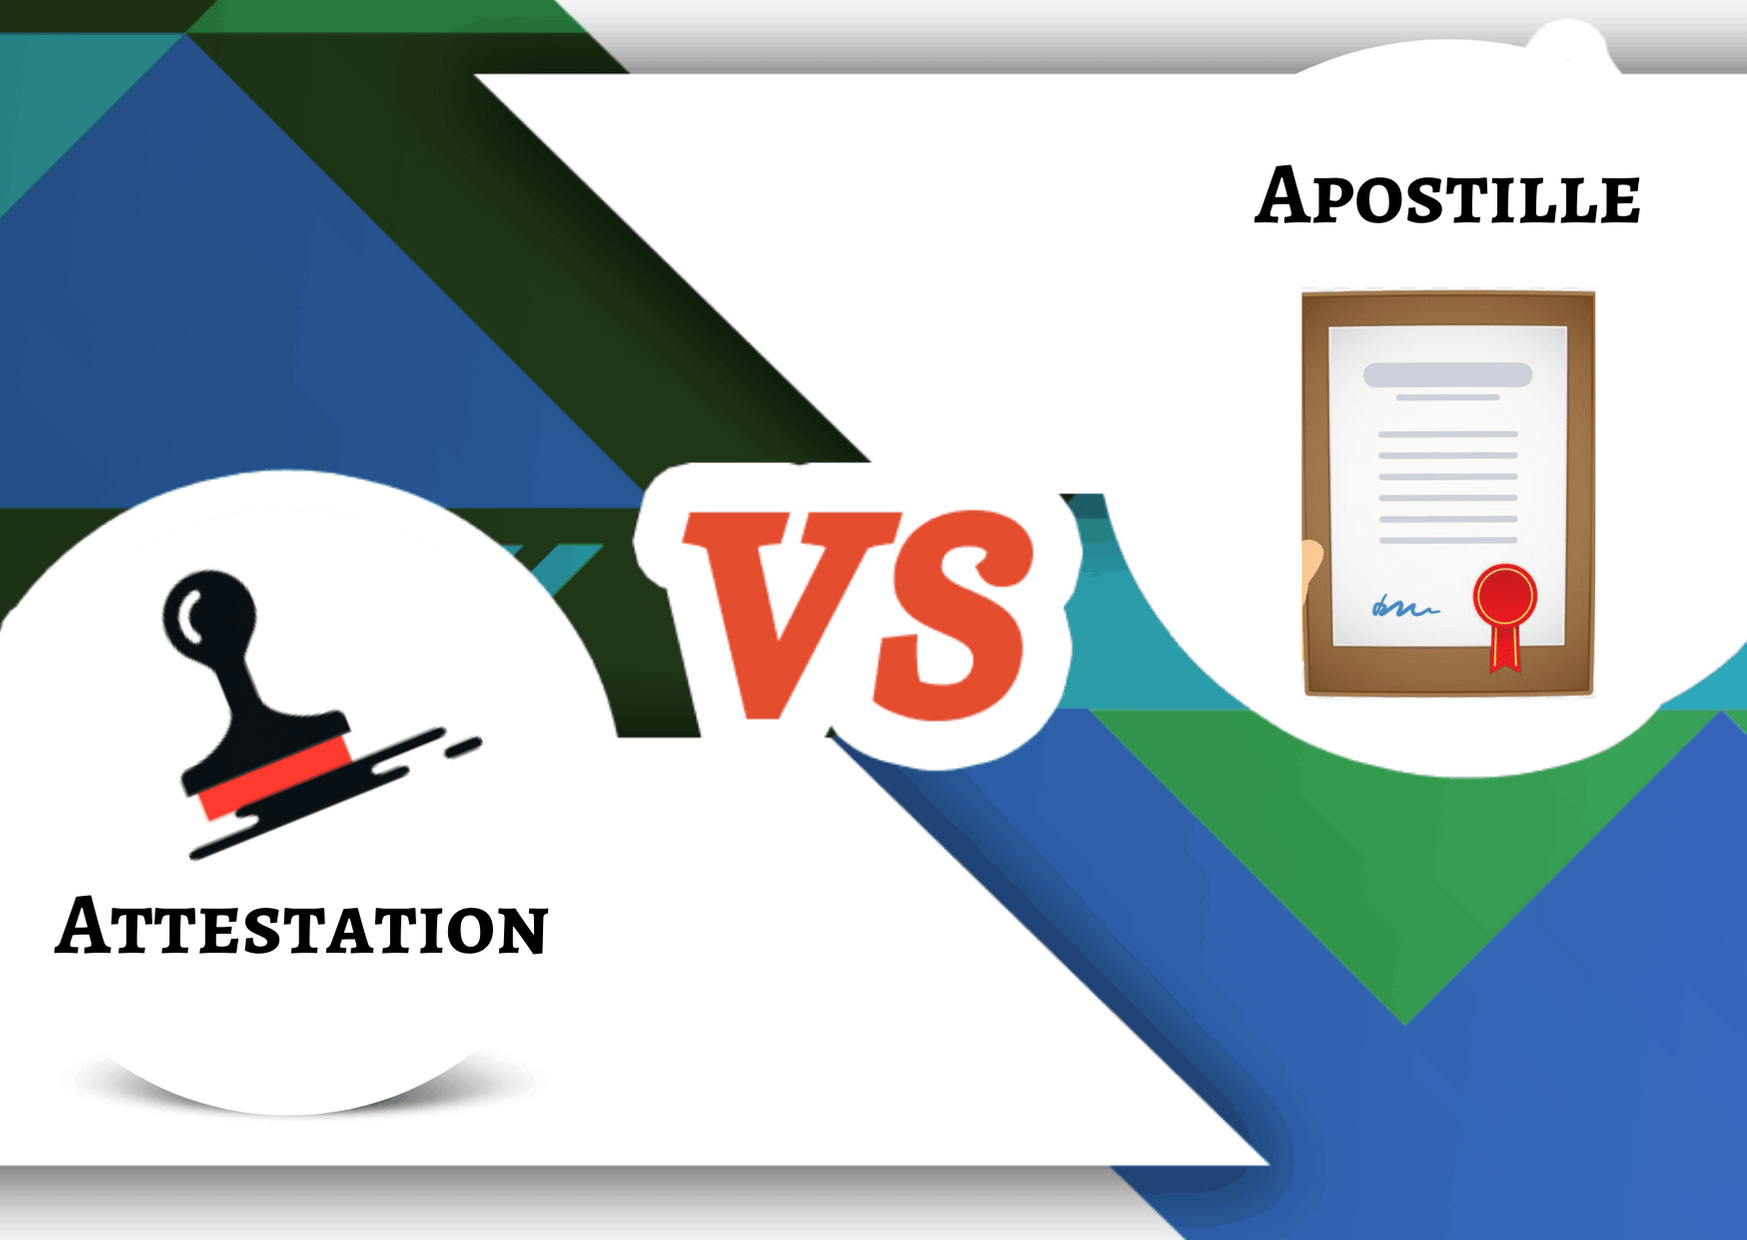 Attestation vs Apostille